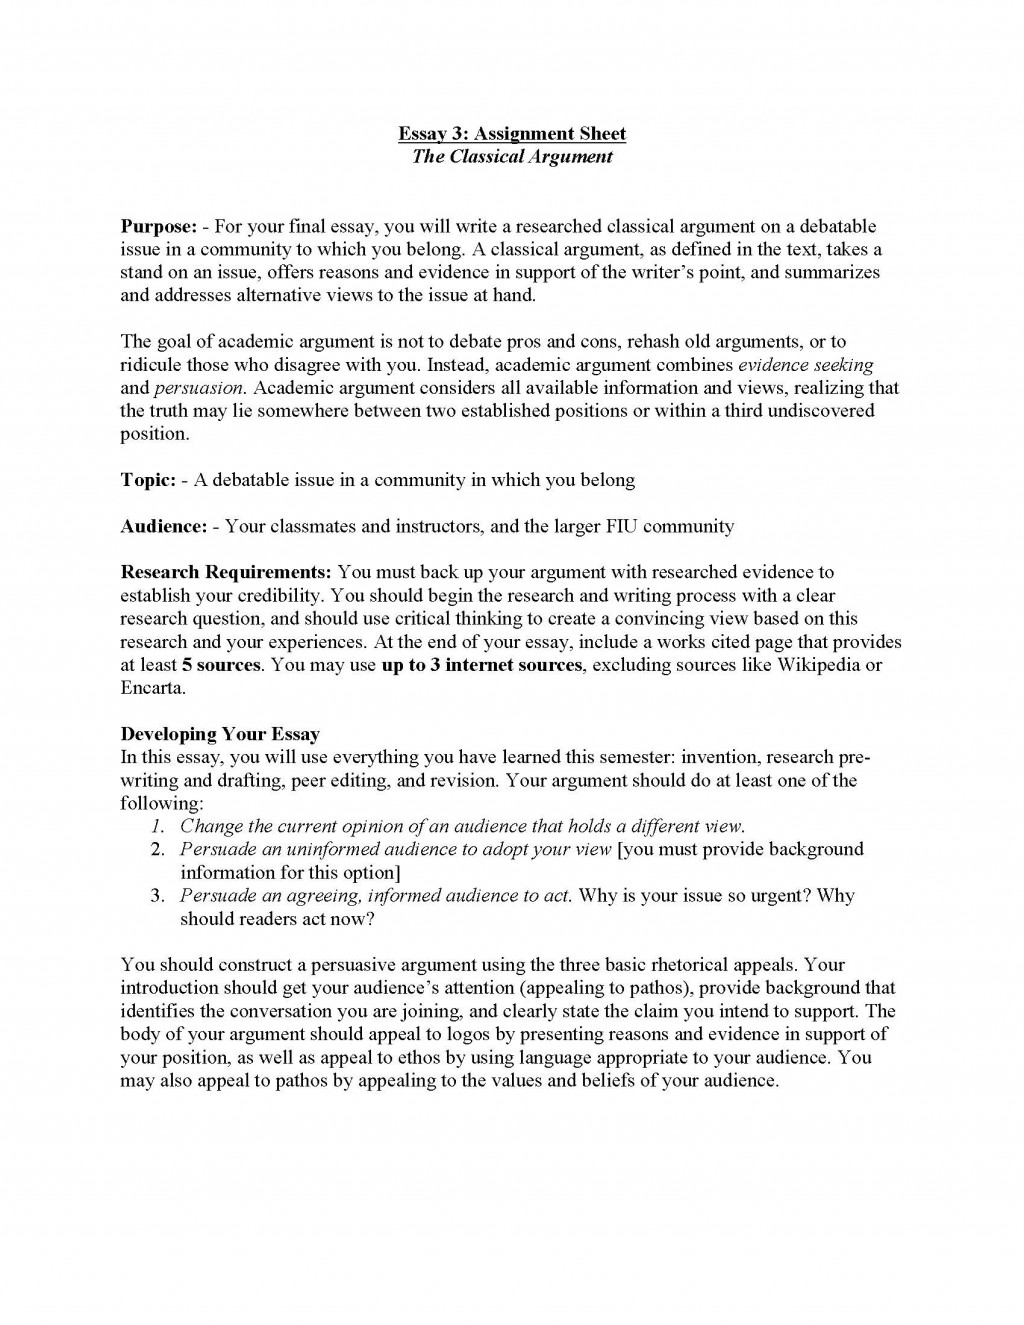 009 Classical Argument Unit Assignment Page 1 Essay Example Essays About Stirring Drugs Short Tagalog Persuasive Illegal Argumentative Addiction Large